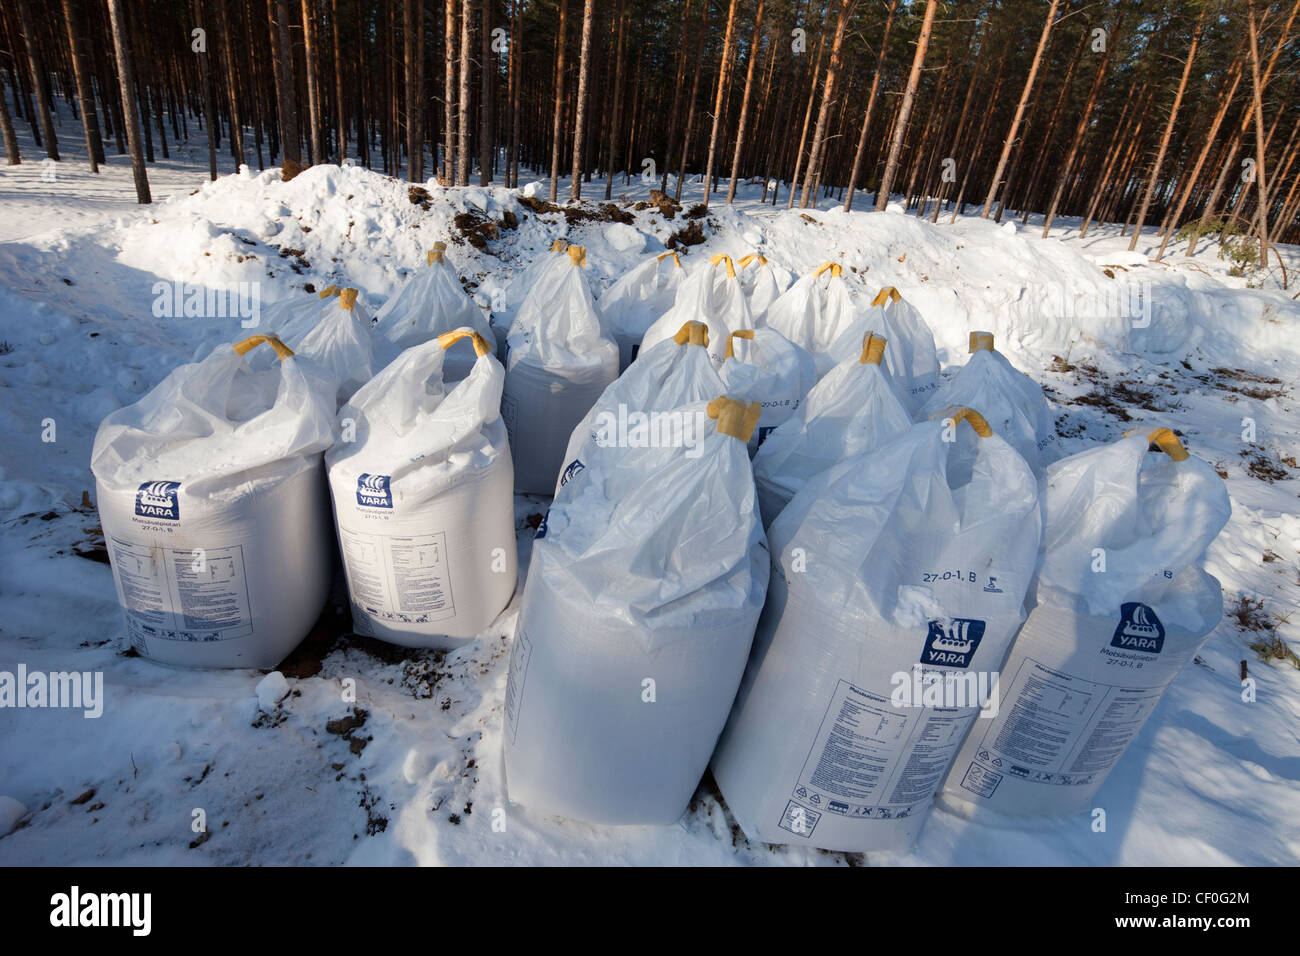 Inventory of 650 kg sacks of saltpeter for fertilizing forest , Finland Stock Photo